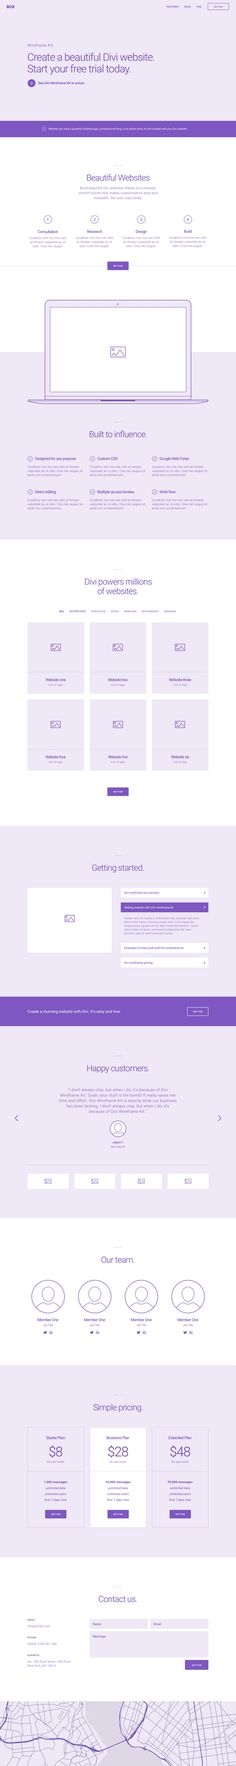 Welcome to Day 72 of our Divi 100 Marathon. Keep tuning in for 100 days in a row of awesome Divi resources as we count down to the amazing release of Divi 3.0 on the final day of the series!   Today we have the sequel to one of the most popular layout kits of the Divi 100 Marathon. Volume 2 of the...